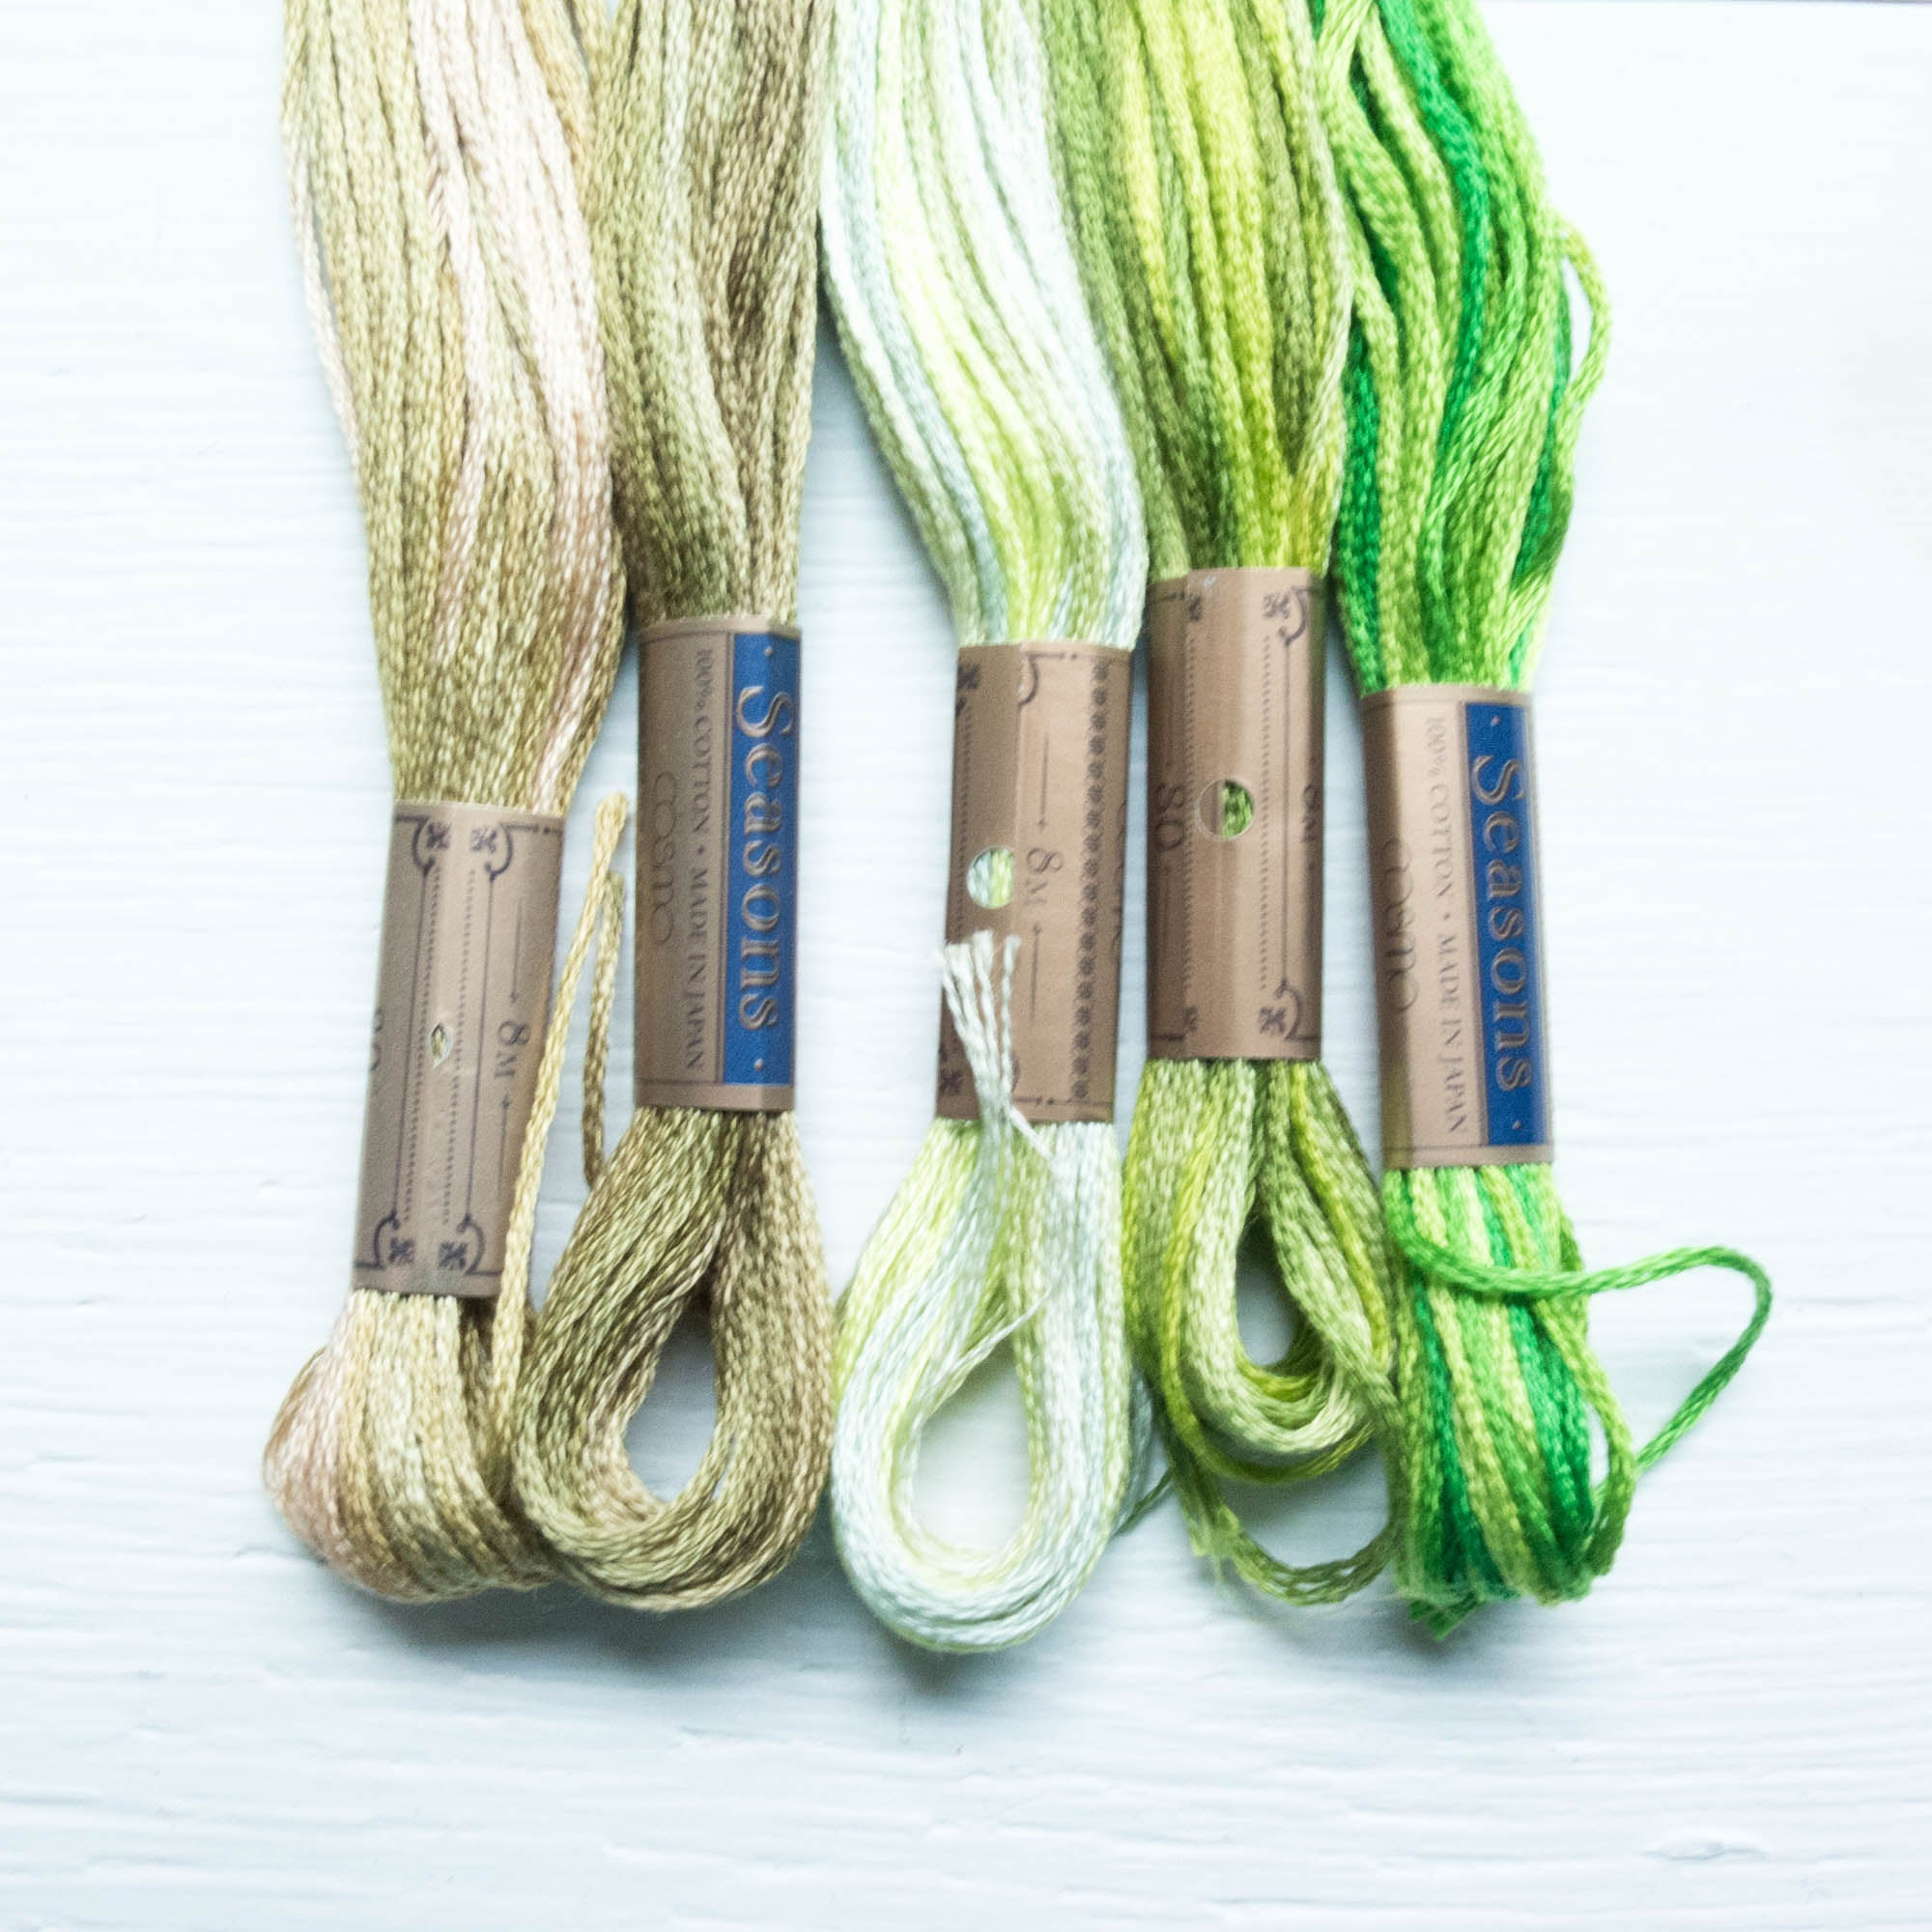 COSMO Seasons Variegated Embroidery Floss - 5011, 5012, 5013, 5014, 5015 Floss - Snuggly Monkey